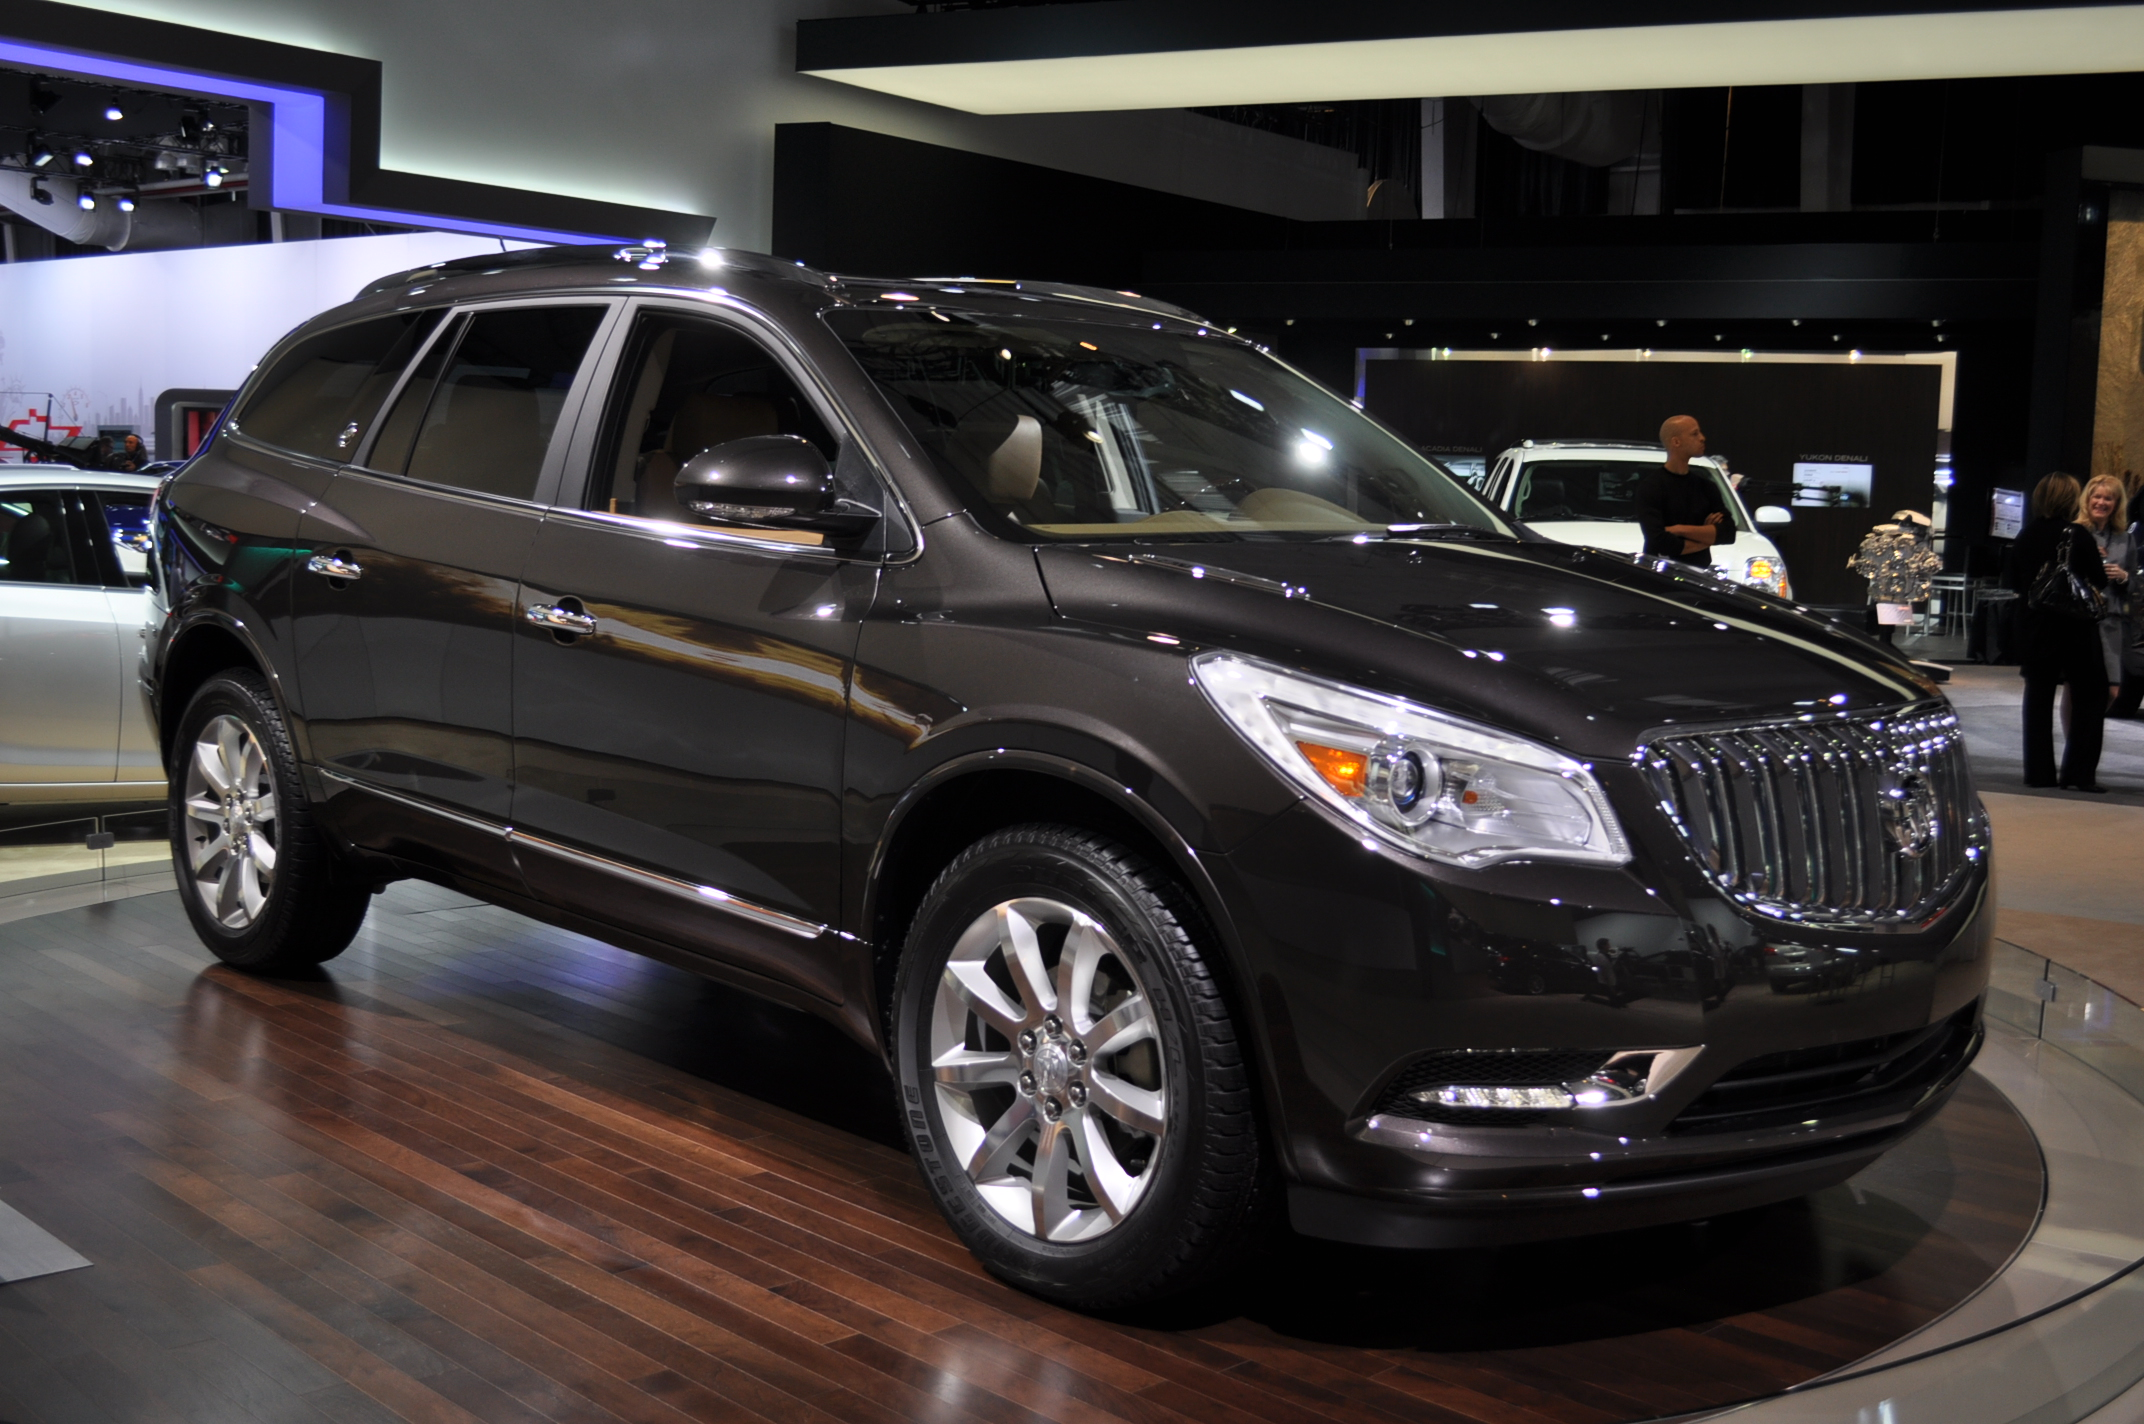 2013 Buick Enclave Starts At $39,270